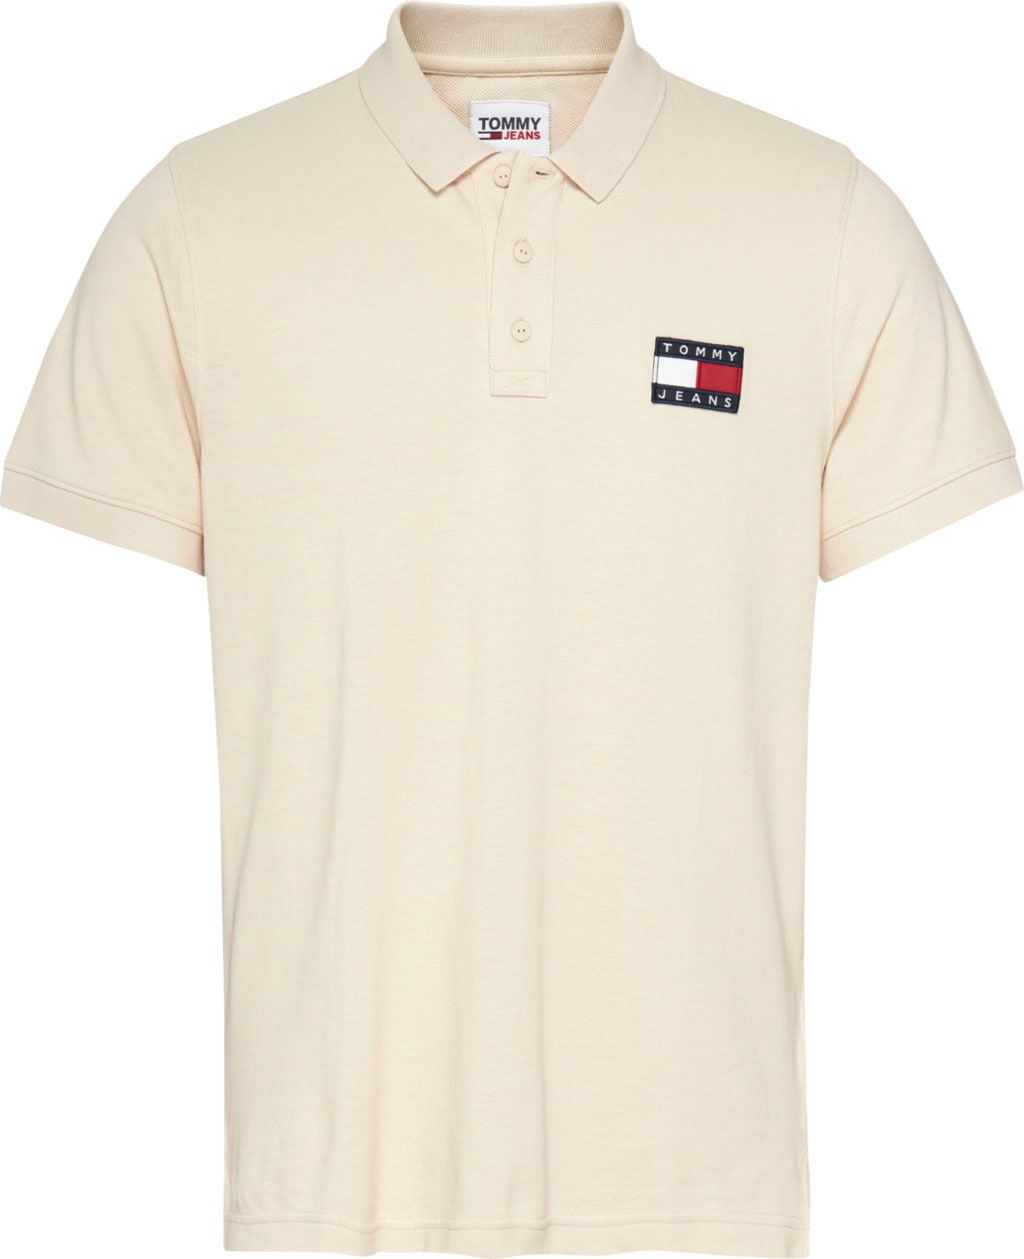 tommy jeans -  Poloshirt TJM TOMMY BADGE LIGHTWEIGHT POLO